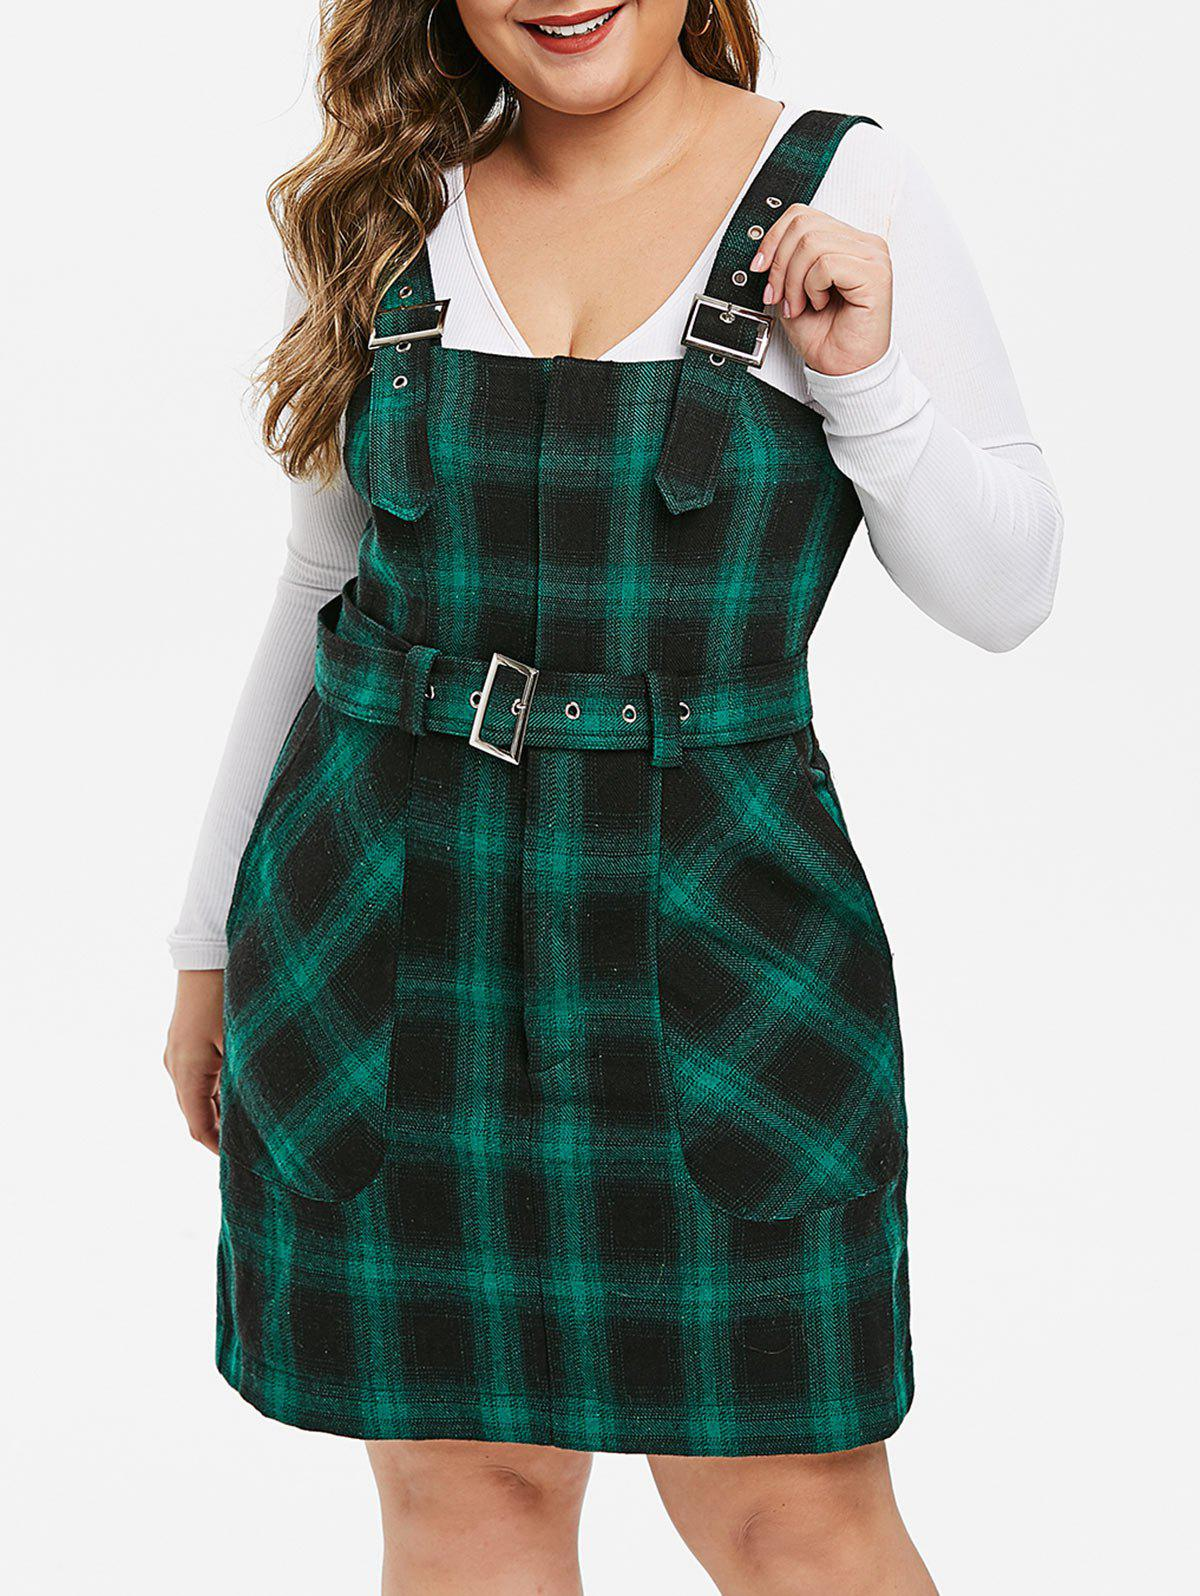 Plus Size Buckle Straps Plaid Mini Overall Dress